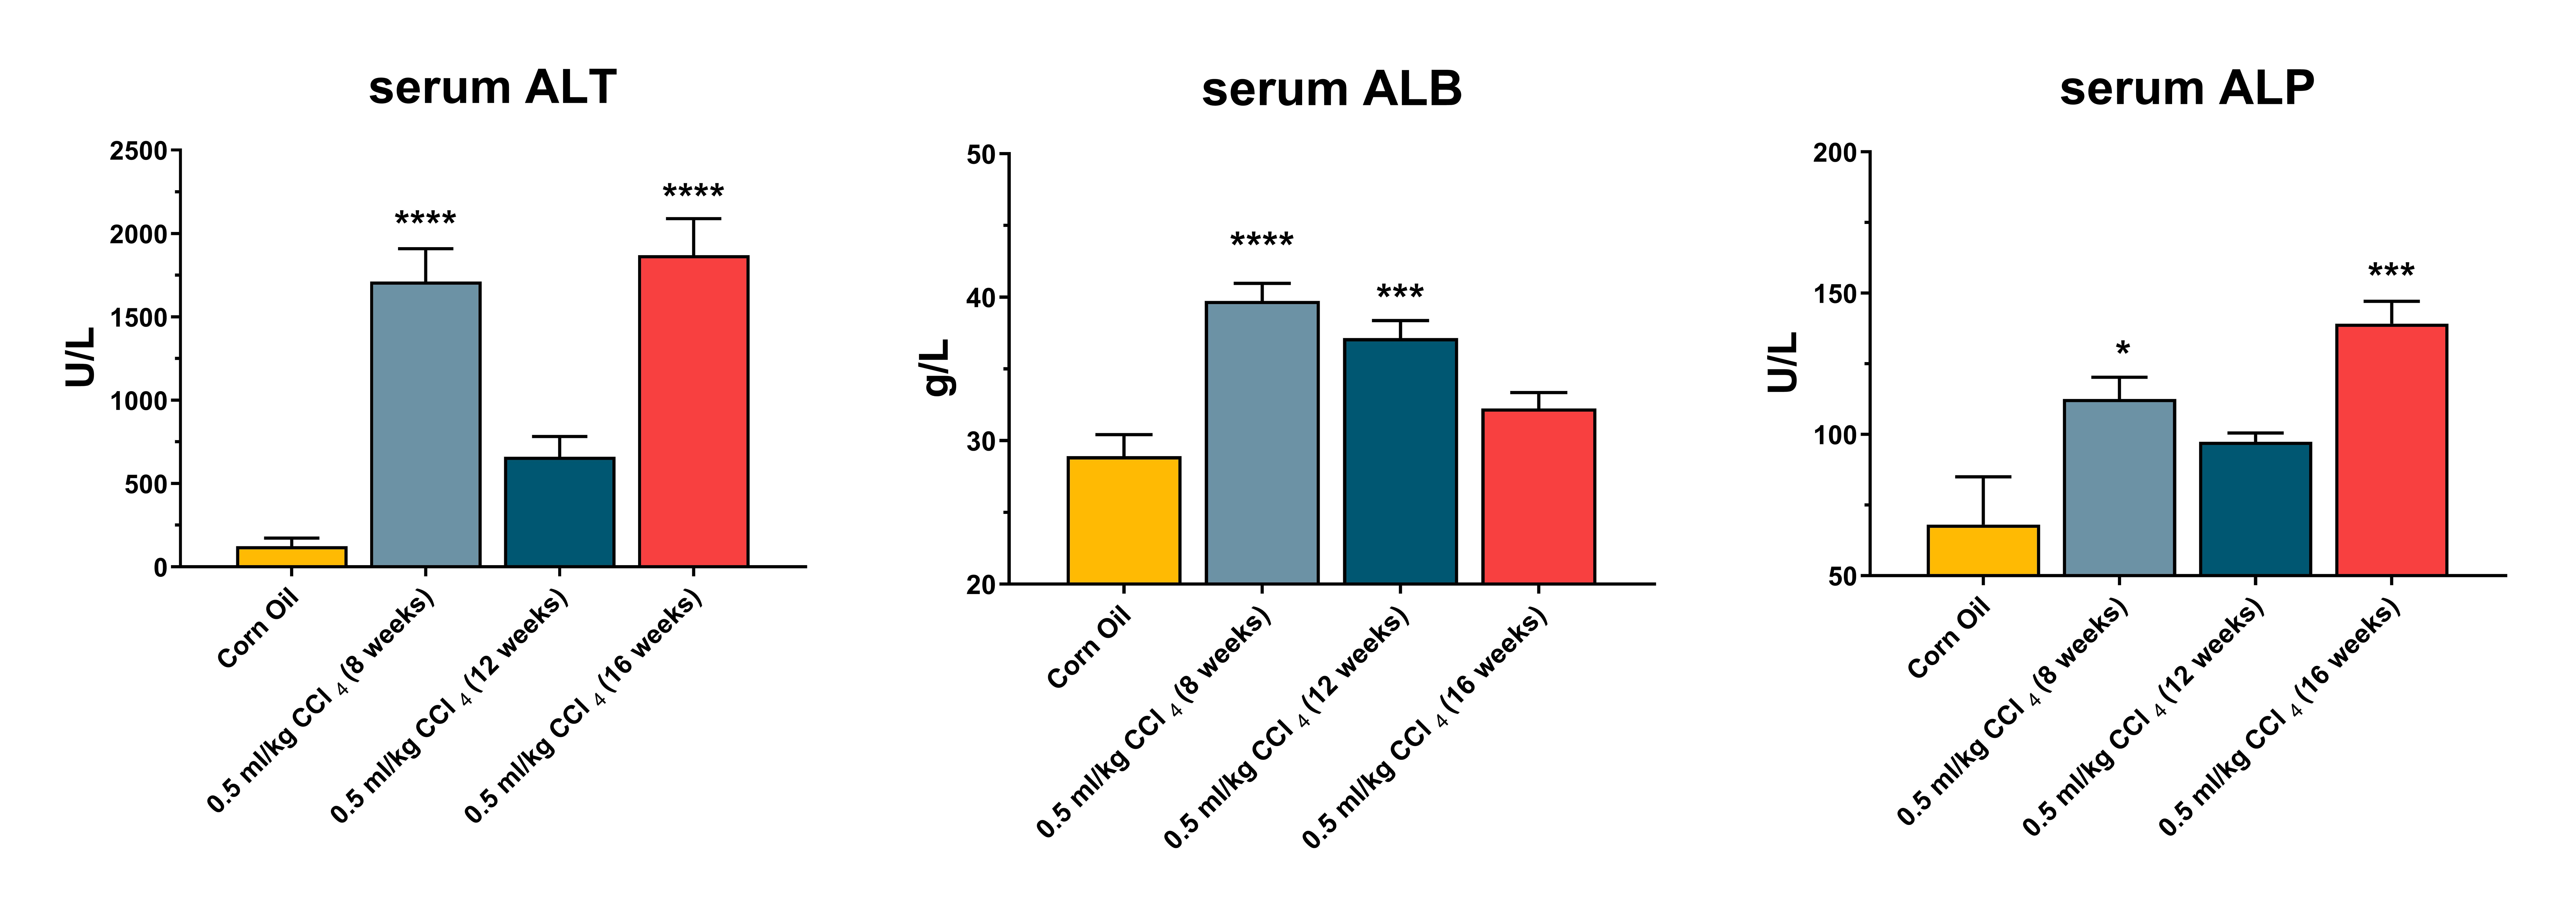 Serum levels Alanine Aminotransferase (ALT), Albumin (ALB), and Alkaline Phosphatase (ALP) were assessed in control and diseased animals